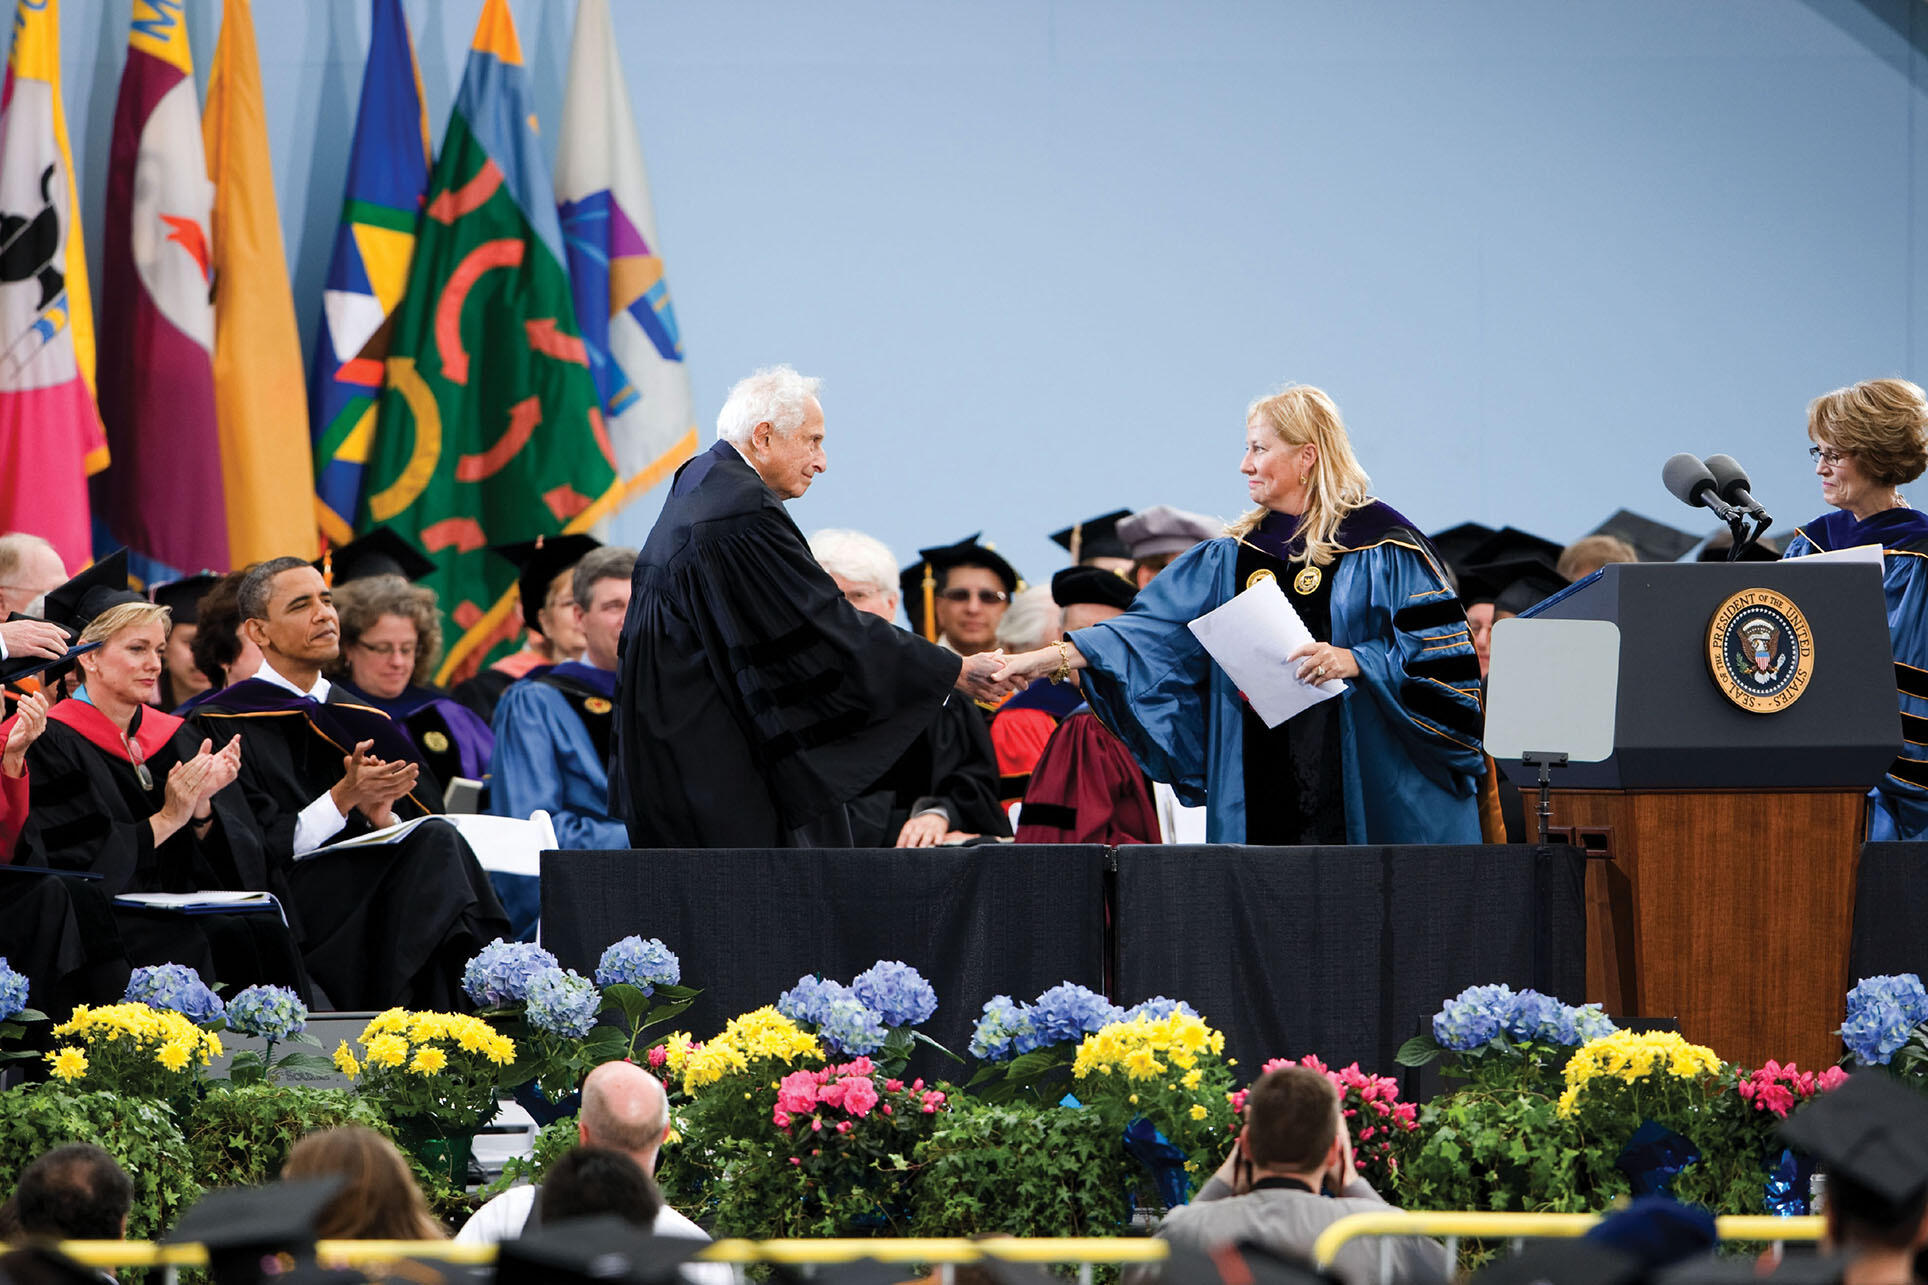 Stan Ovshinsky receives an honorary Doctor of Science degree from the University of Michigan, Ann Arbor, in 2010. At left, Michigan Governor Jennifer Granholm and President Barack Obama applaud. (Photo by Scott C. Soderberg/Michigan Photography.)